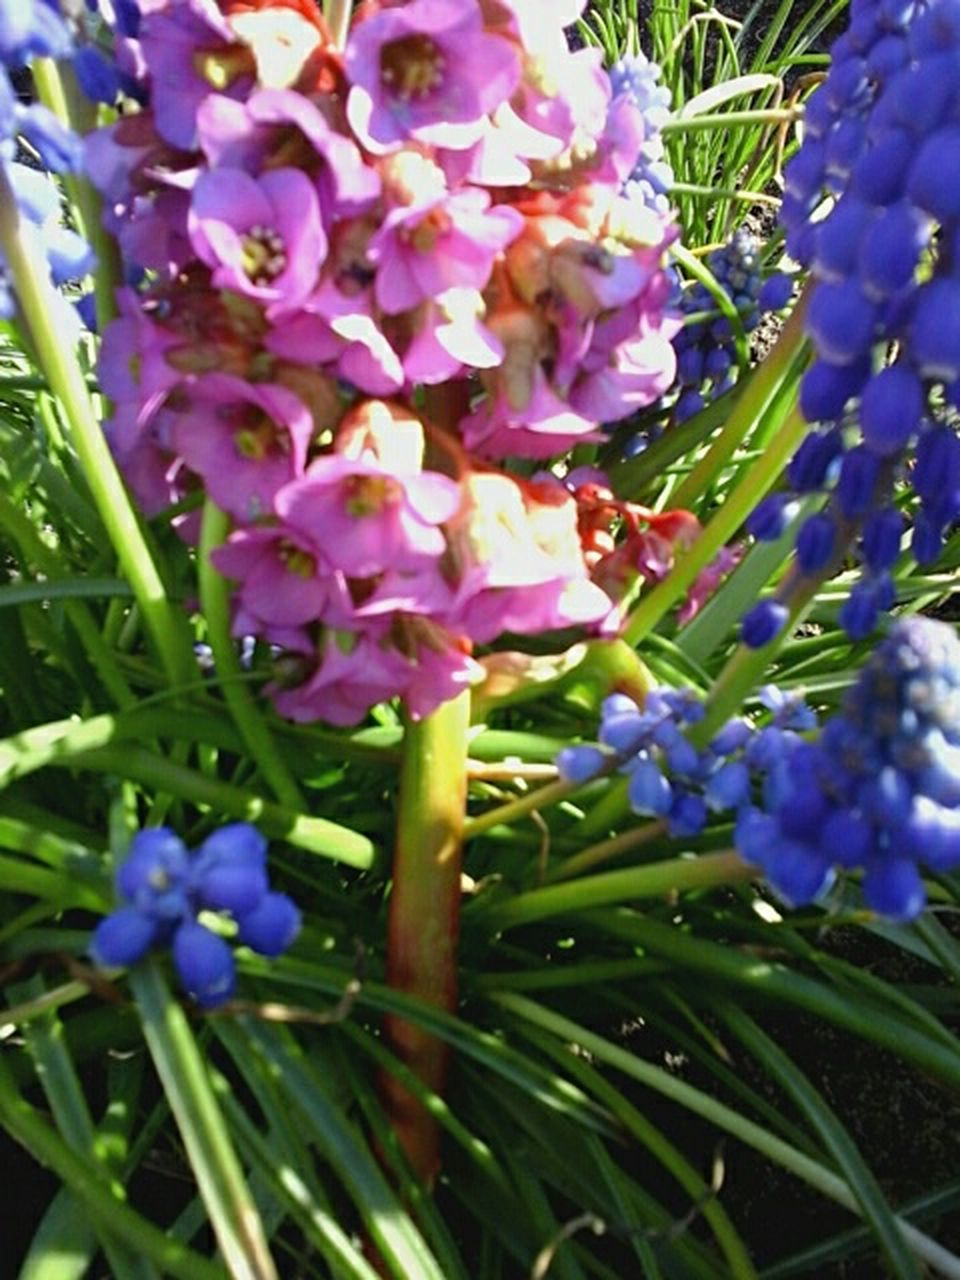 growth, purple, flower, nature, beauty in nature, plant, freshness, day, no people, fragility, close-up, outdoors